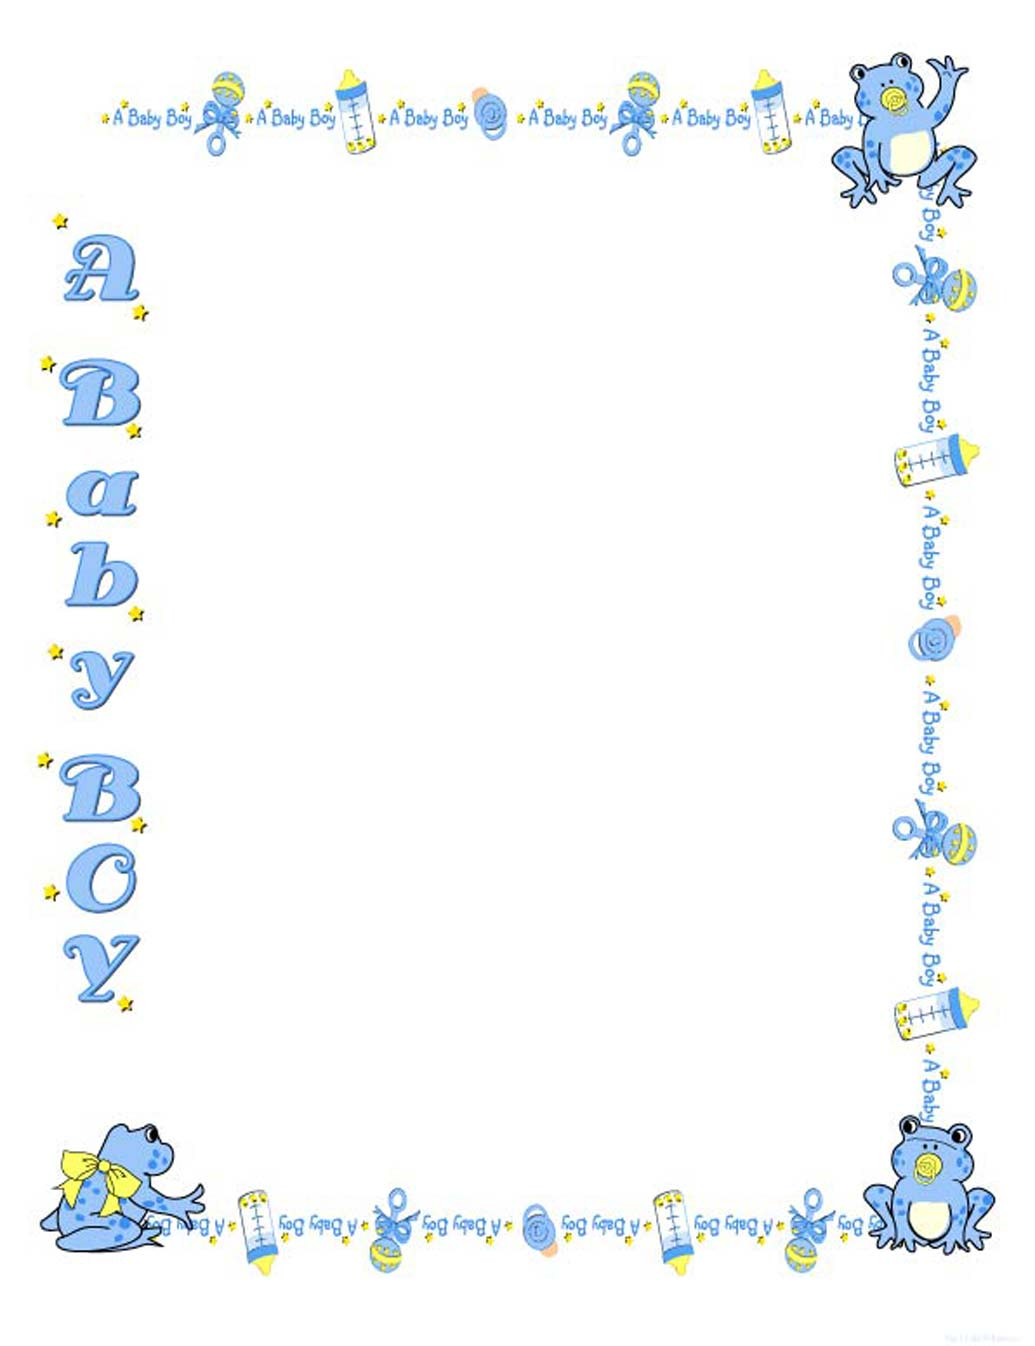 Wedding Bell Borders, Church Bell Borders, Wedding Bell Graphics The ...